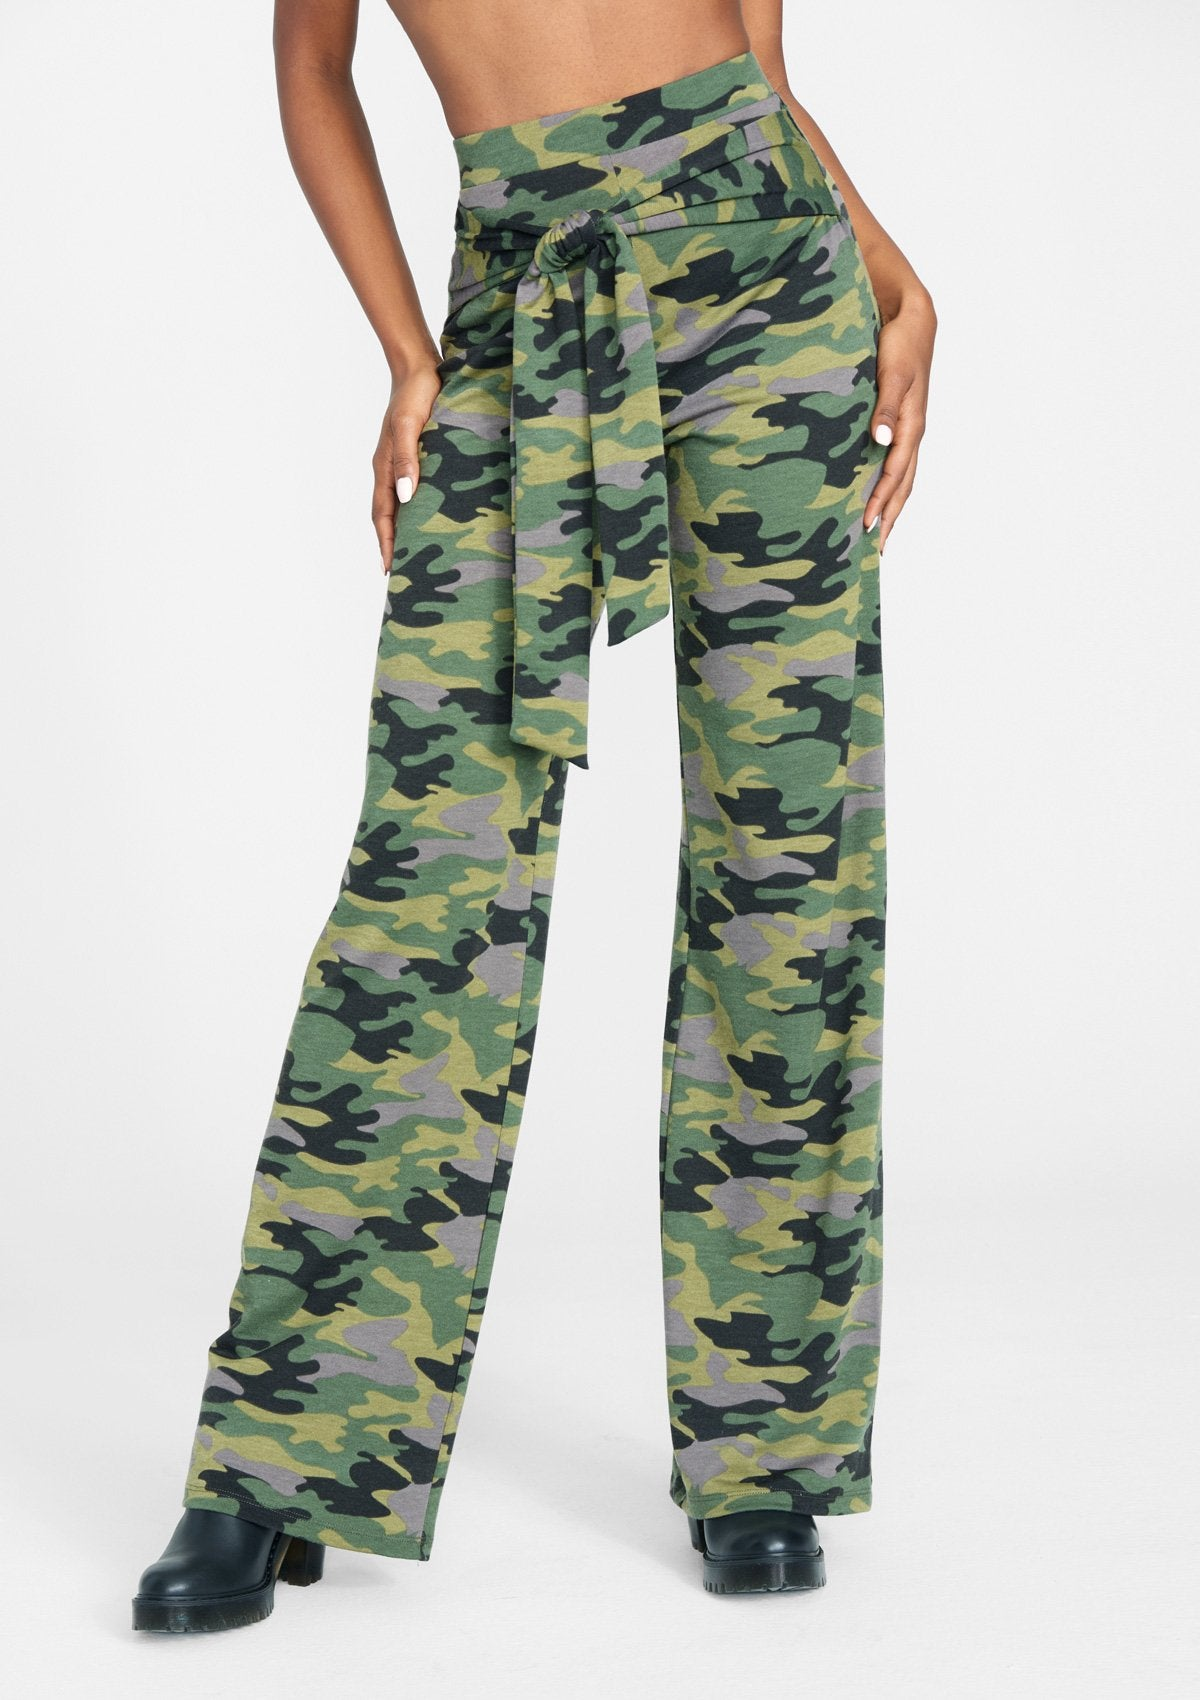 Alloy Apparel Tall Sash Tie Wide Leg Pant for Women in Green Camo Size 2XL   Rayon